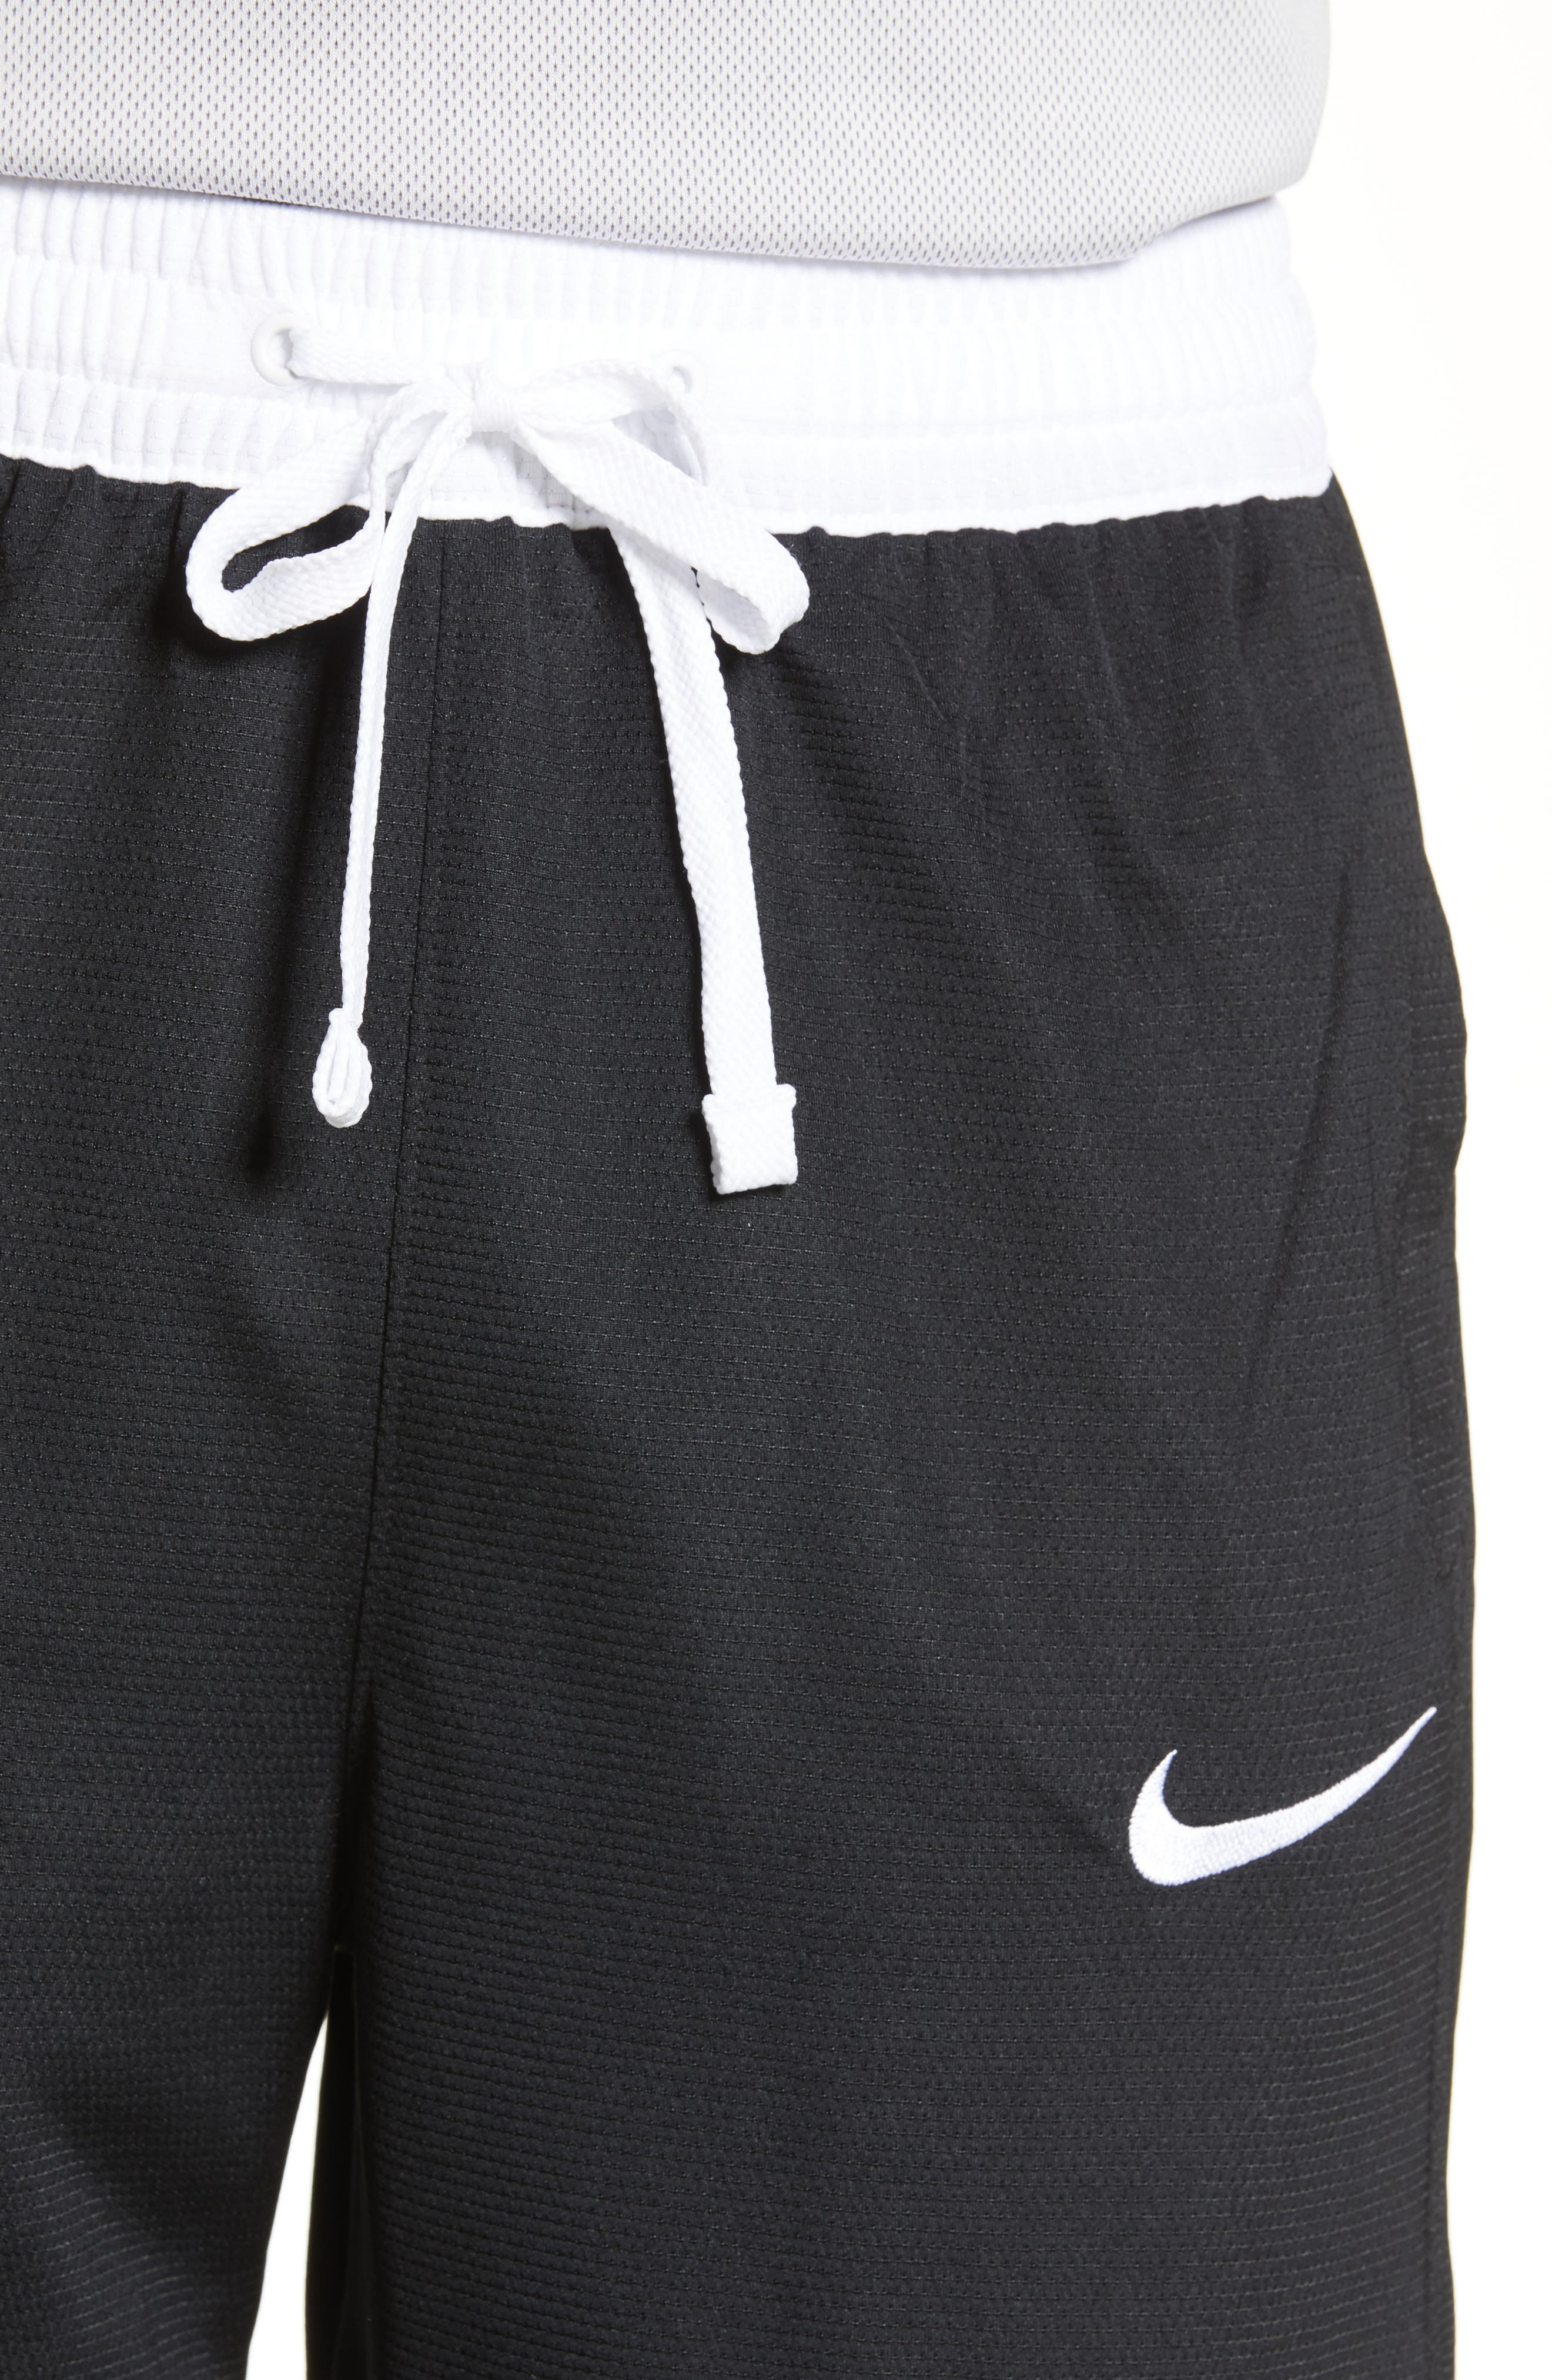 NIKE,                             Dry Elite Stripe Basketball Shorts,                             Alternate thumbnail 4, color,                             BLACK/ WHITE/ WHITE/ WHITE